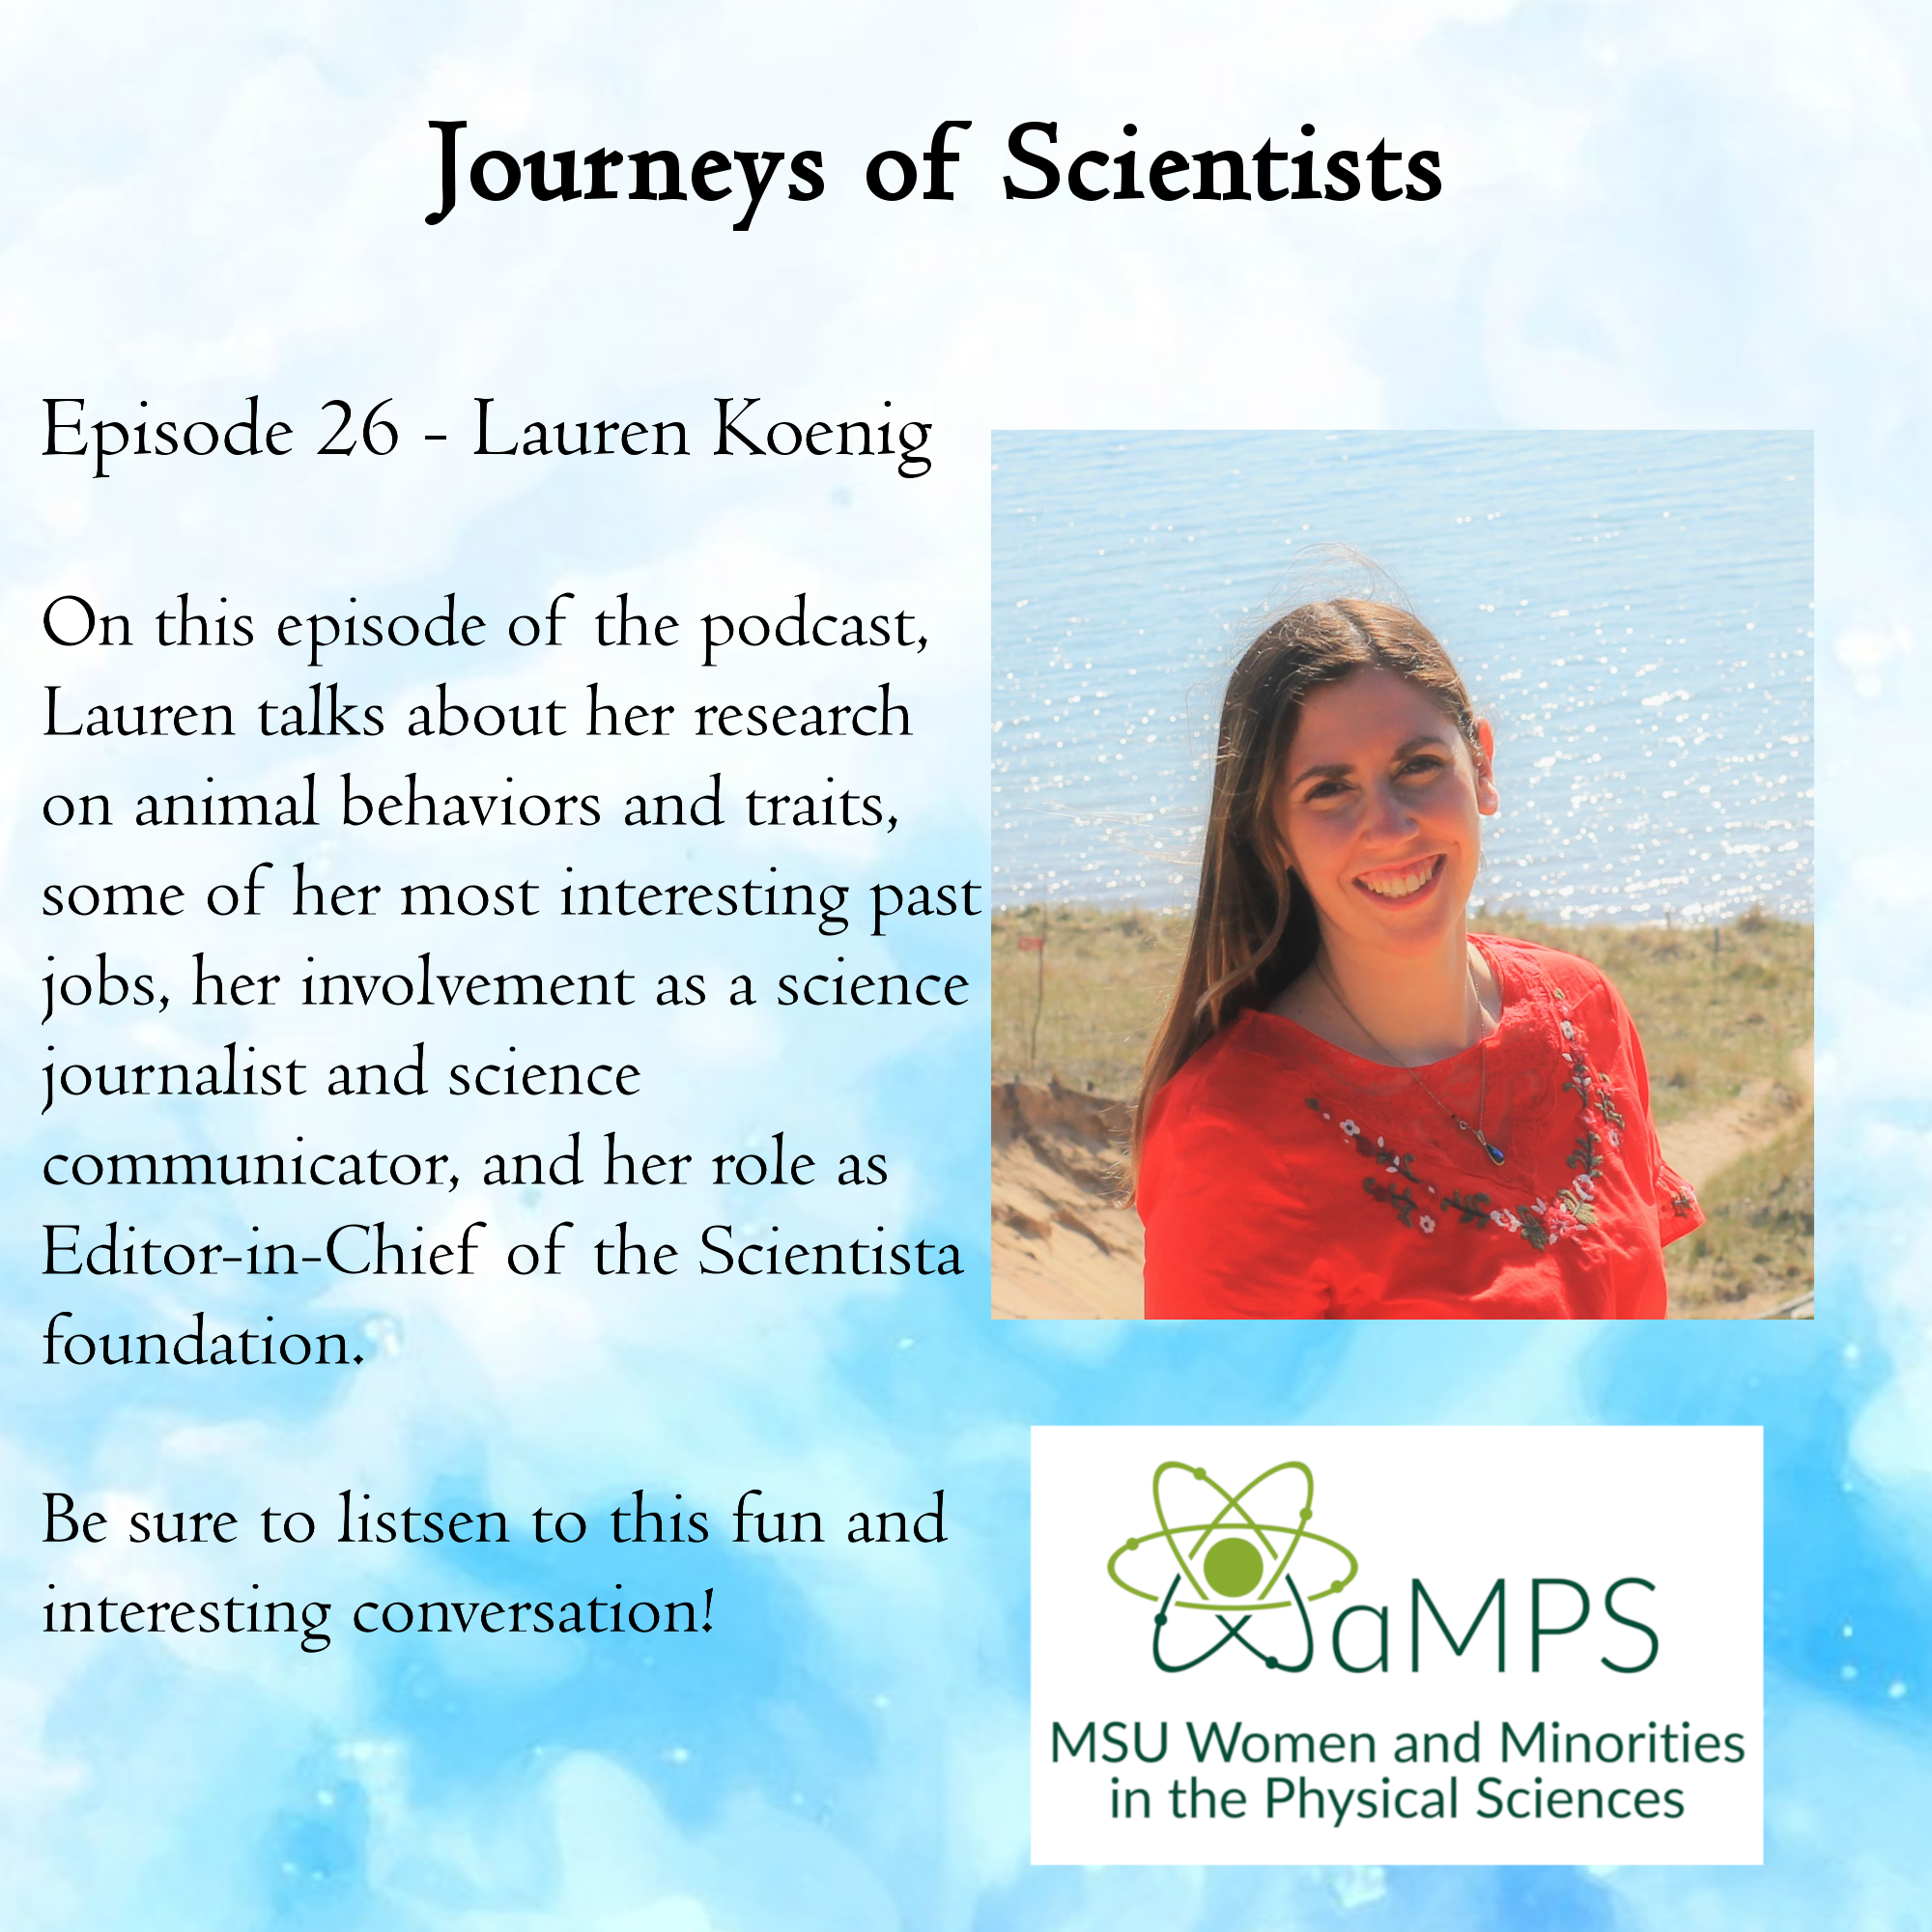 Lauren Koenig's research investigates animal behavior and adaptive traits. She also freelances as a science journalist and promote science communication and  diversity in STEM as Editor-in-Chief of the Scientista foundation: http://www.scientistafoundation.com/